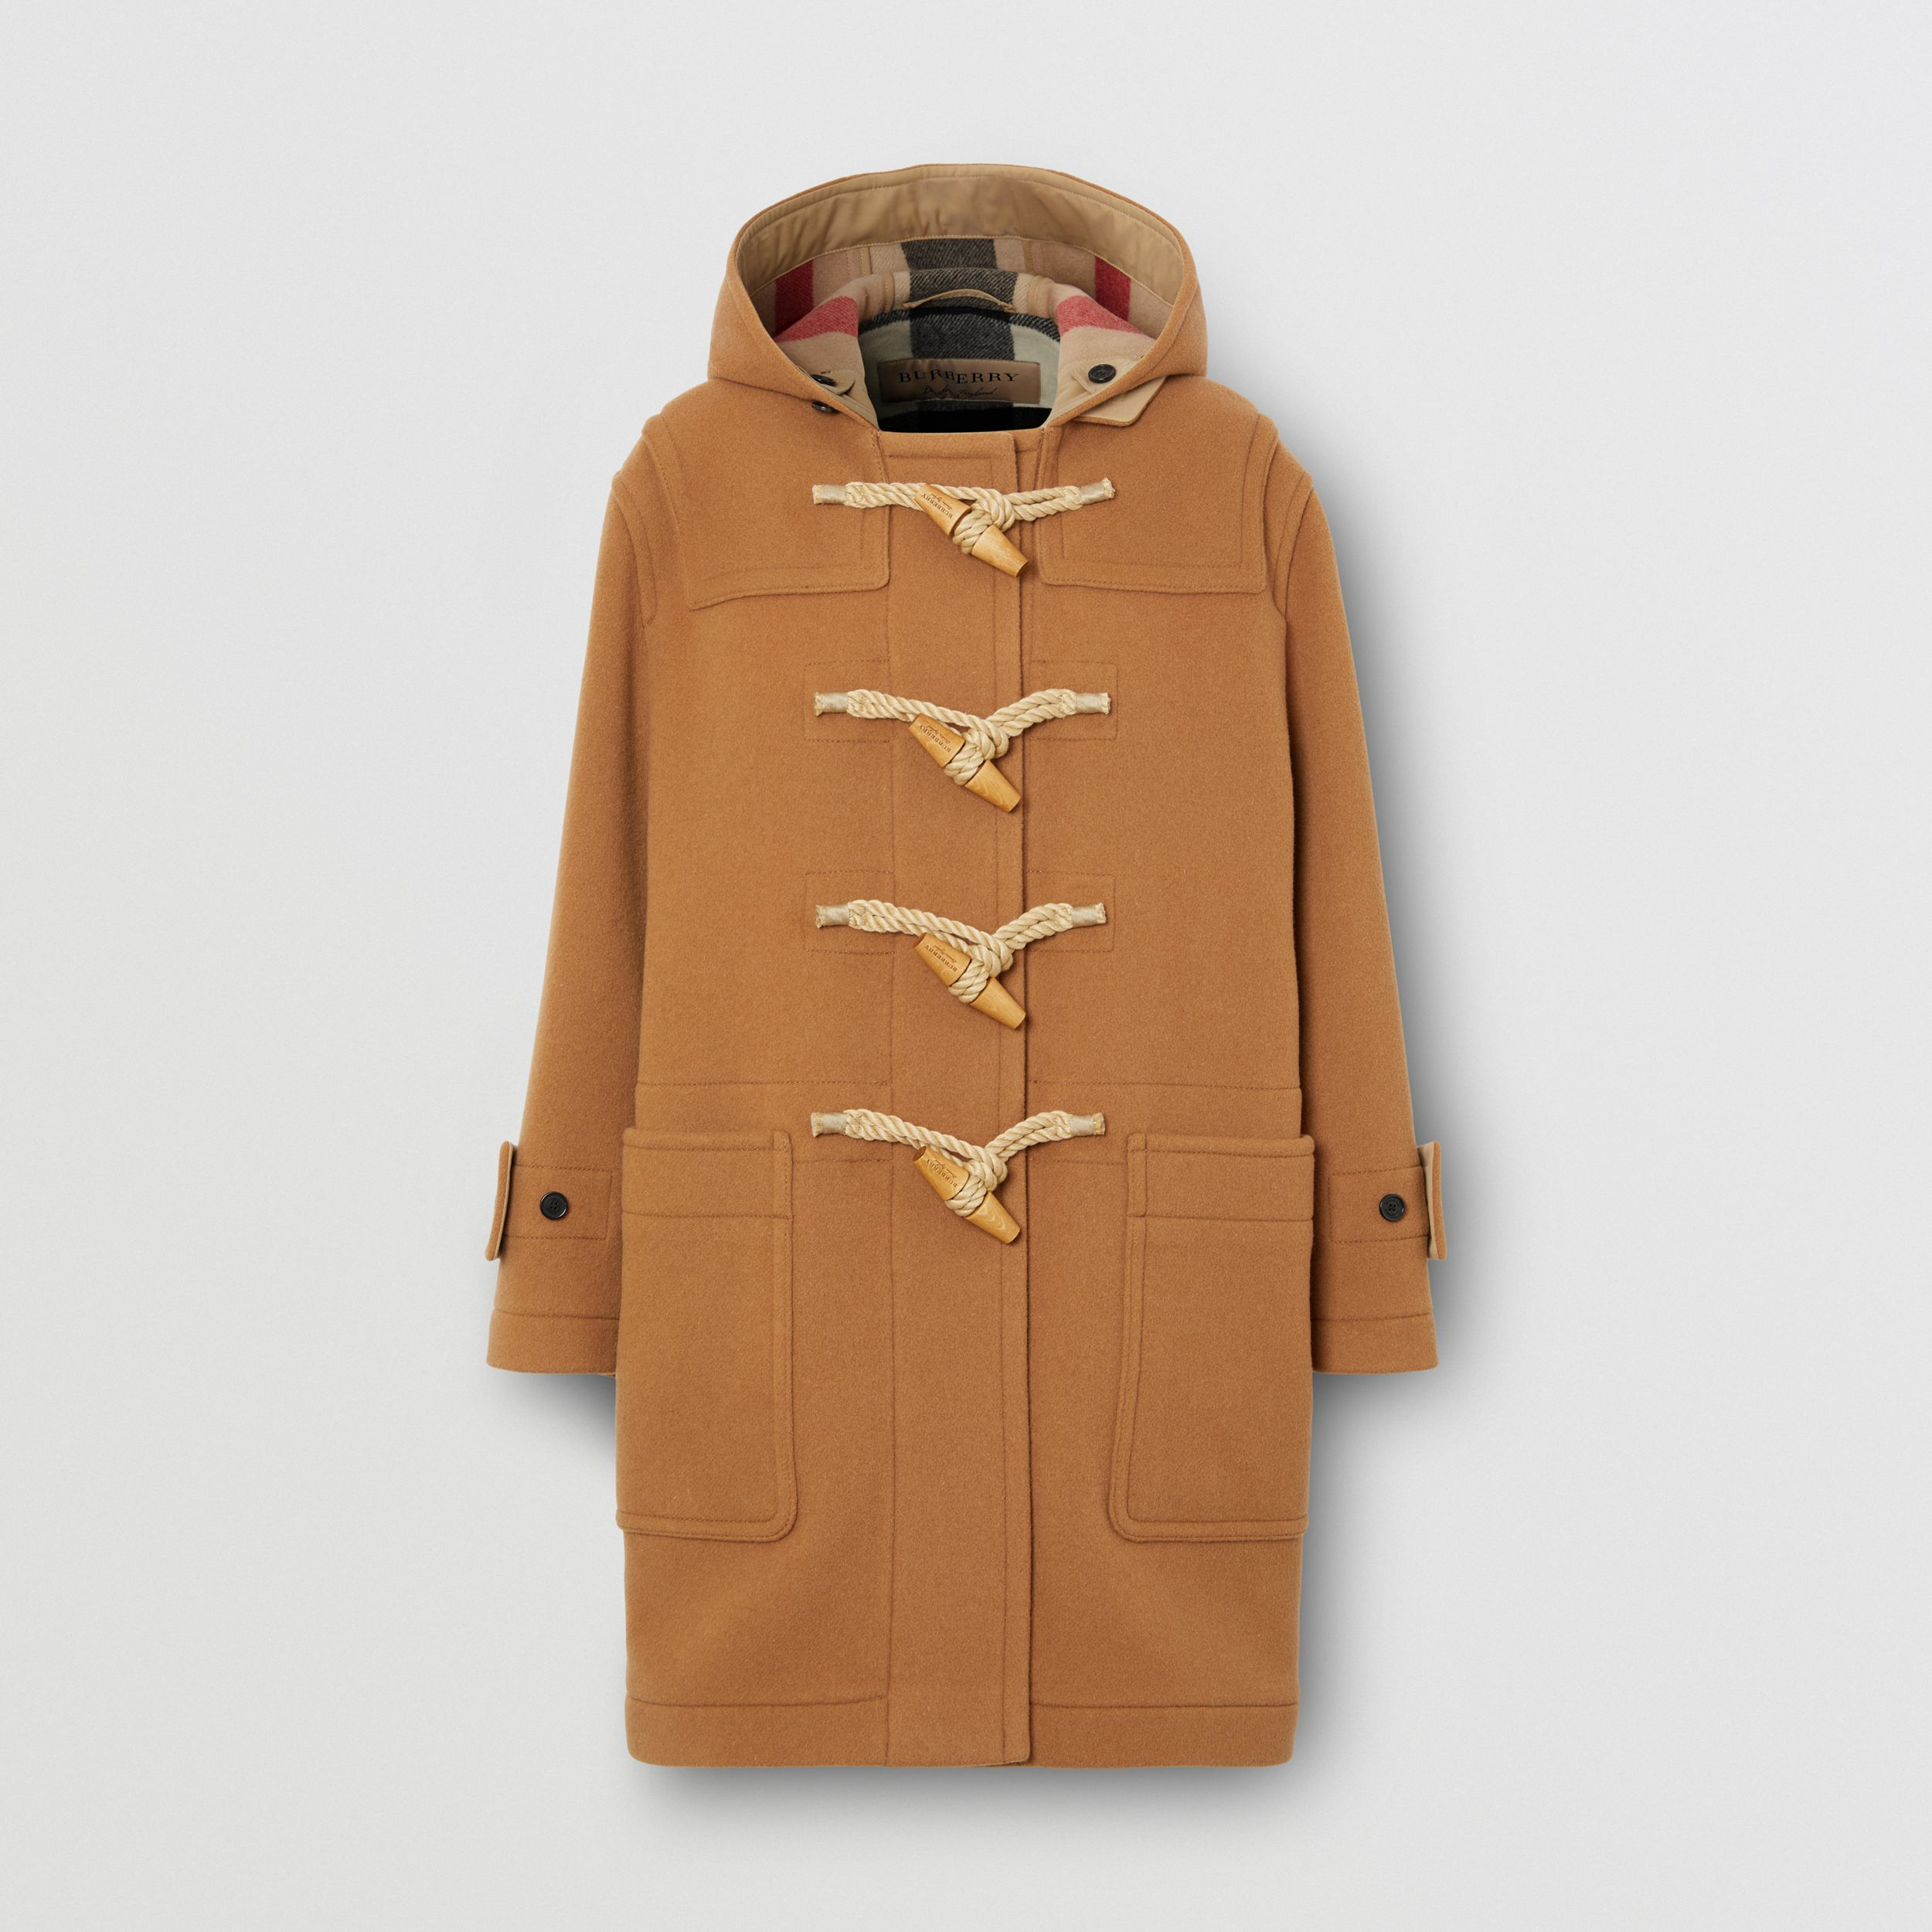 The Greenwich Duffle Coat in Mid Camel - Women | Burberry - 1